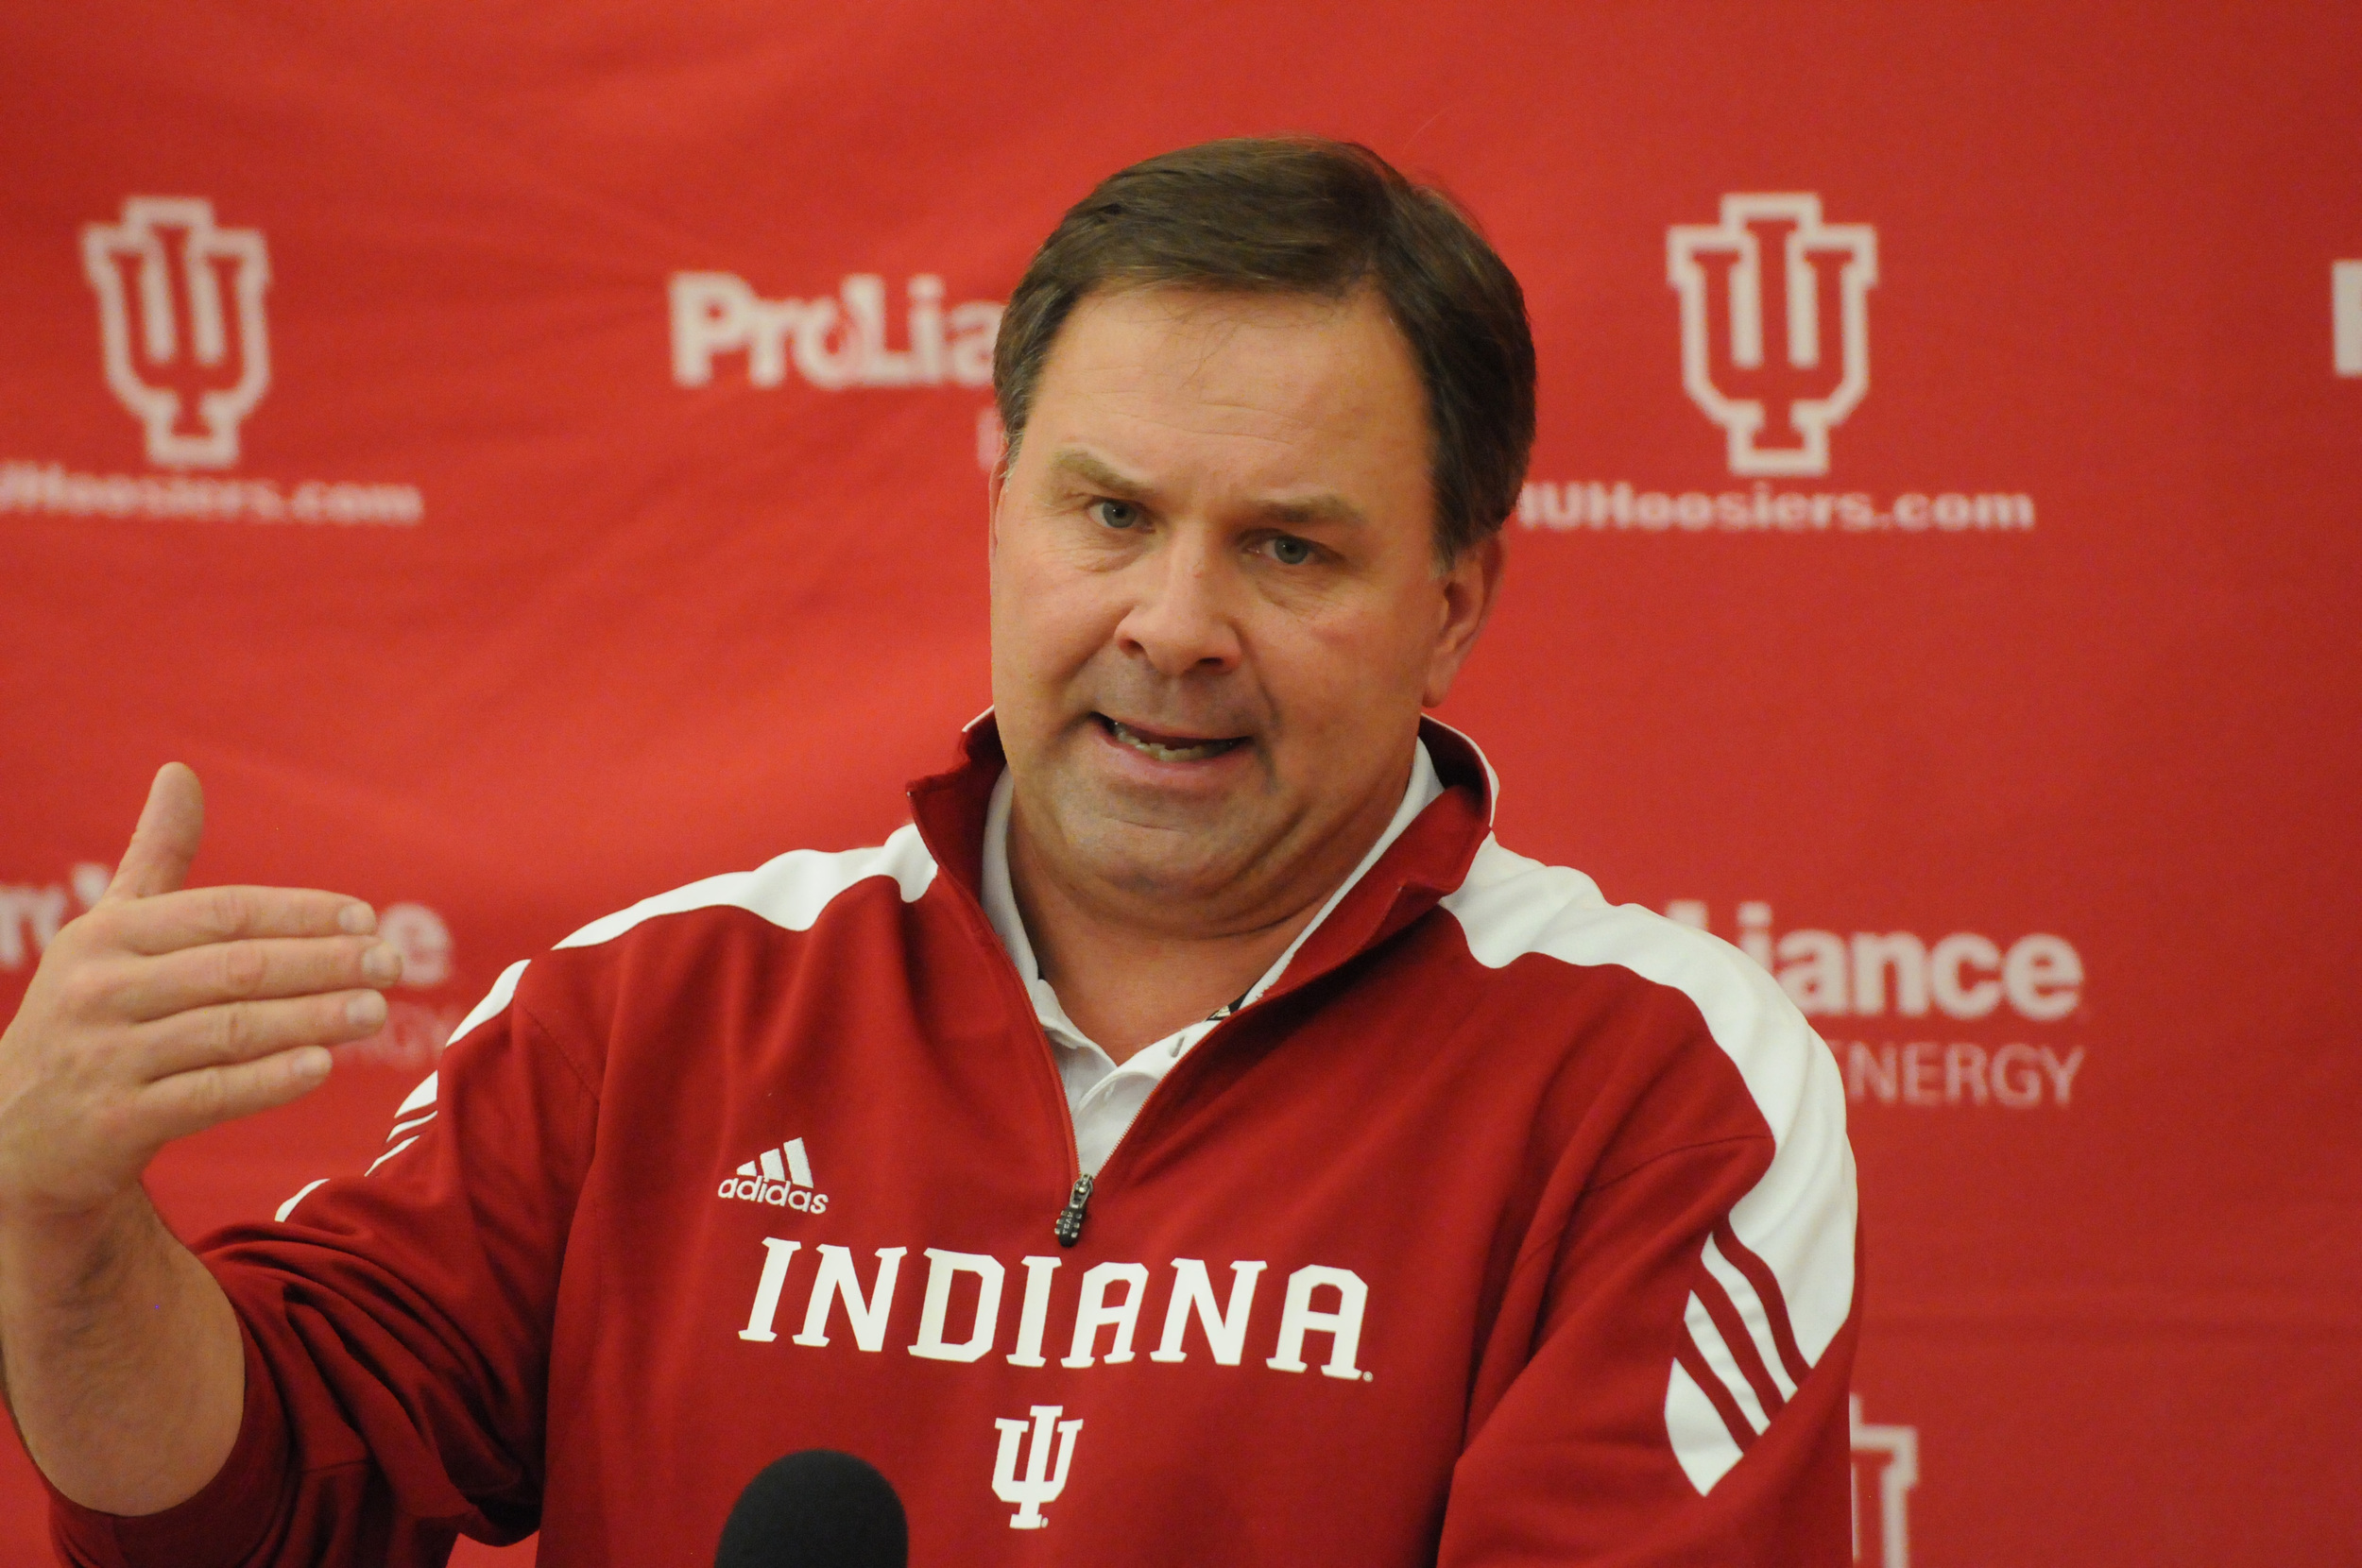 Kevin Wilson announced some roster changes as the Hoosiers open fall camp